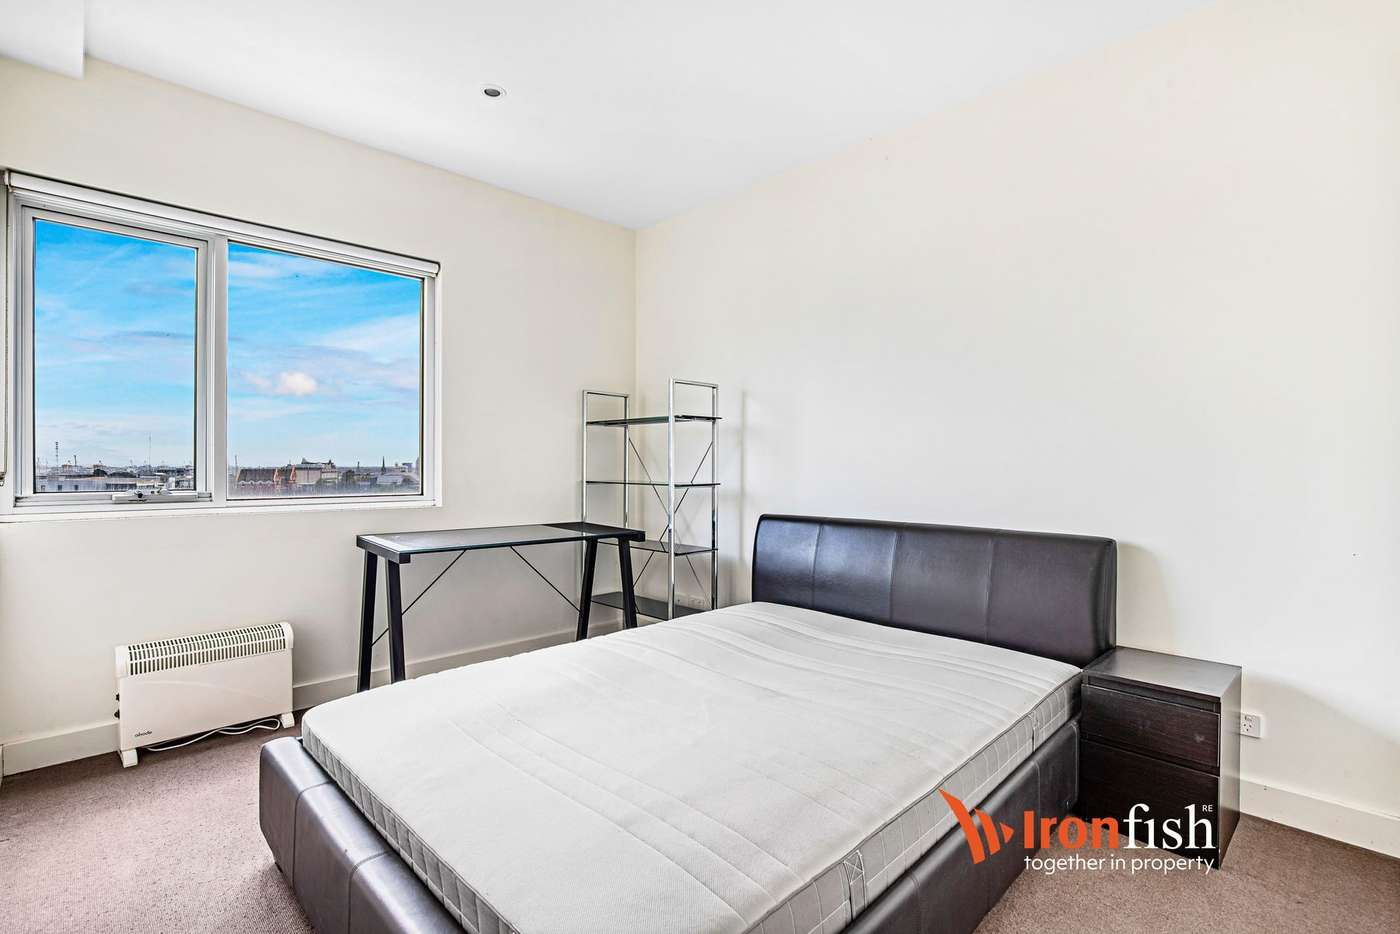 Sixth view of Homely apartment listing, 704/95 Berkeley Street, Melbourne VIC 3000